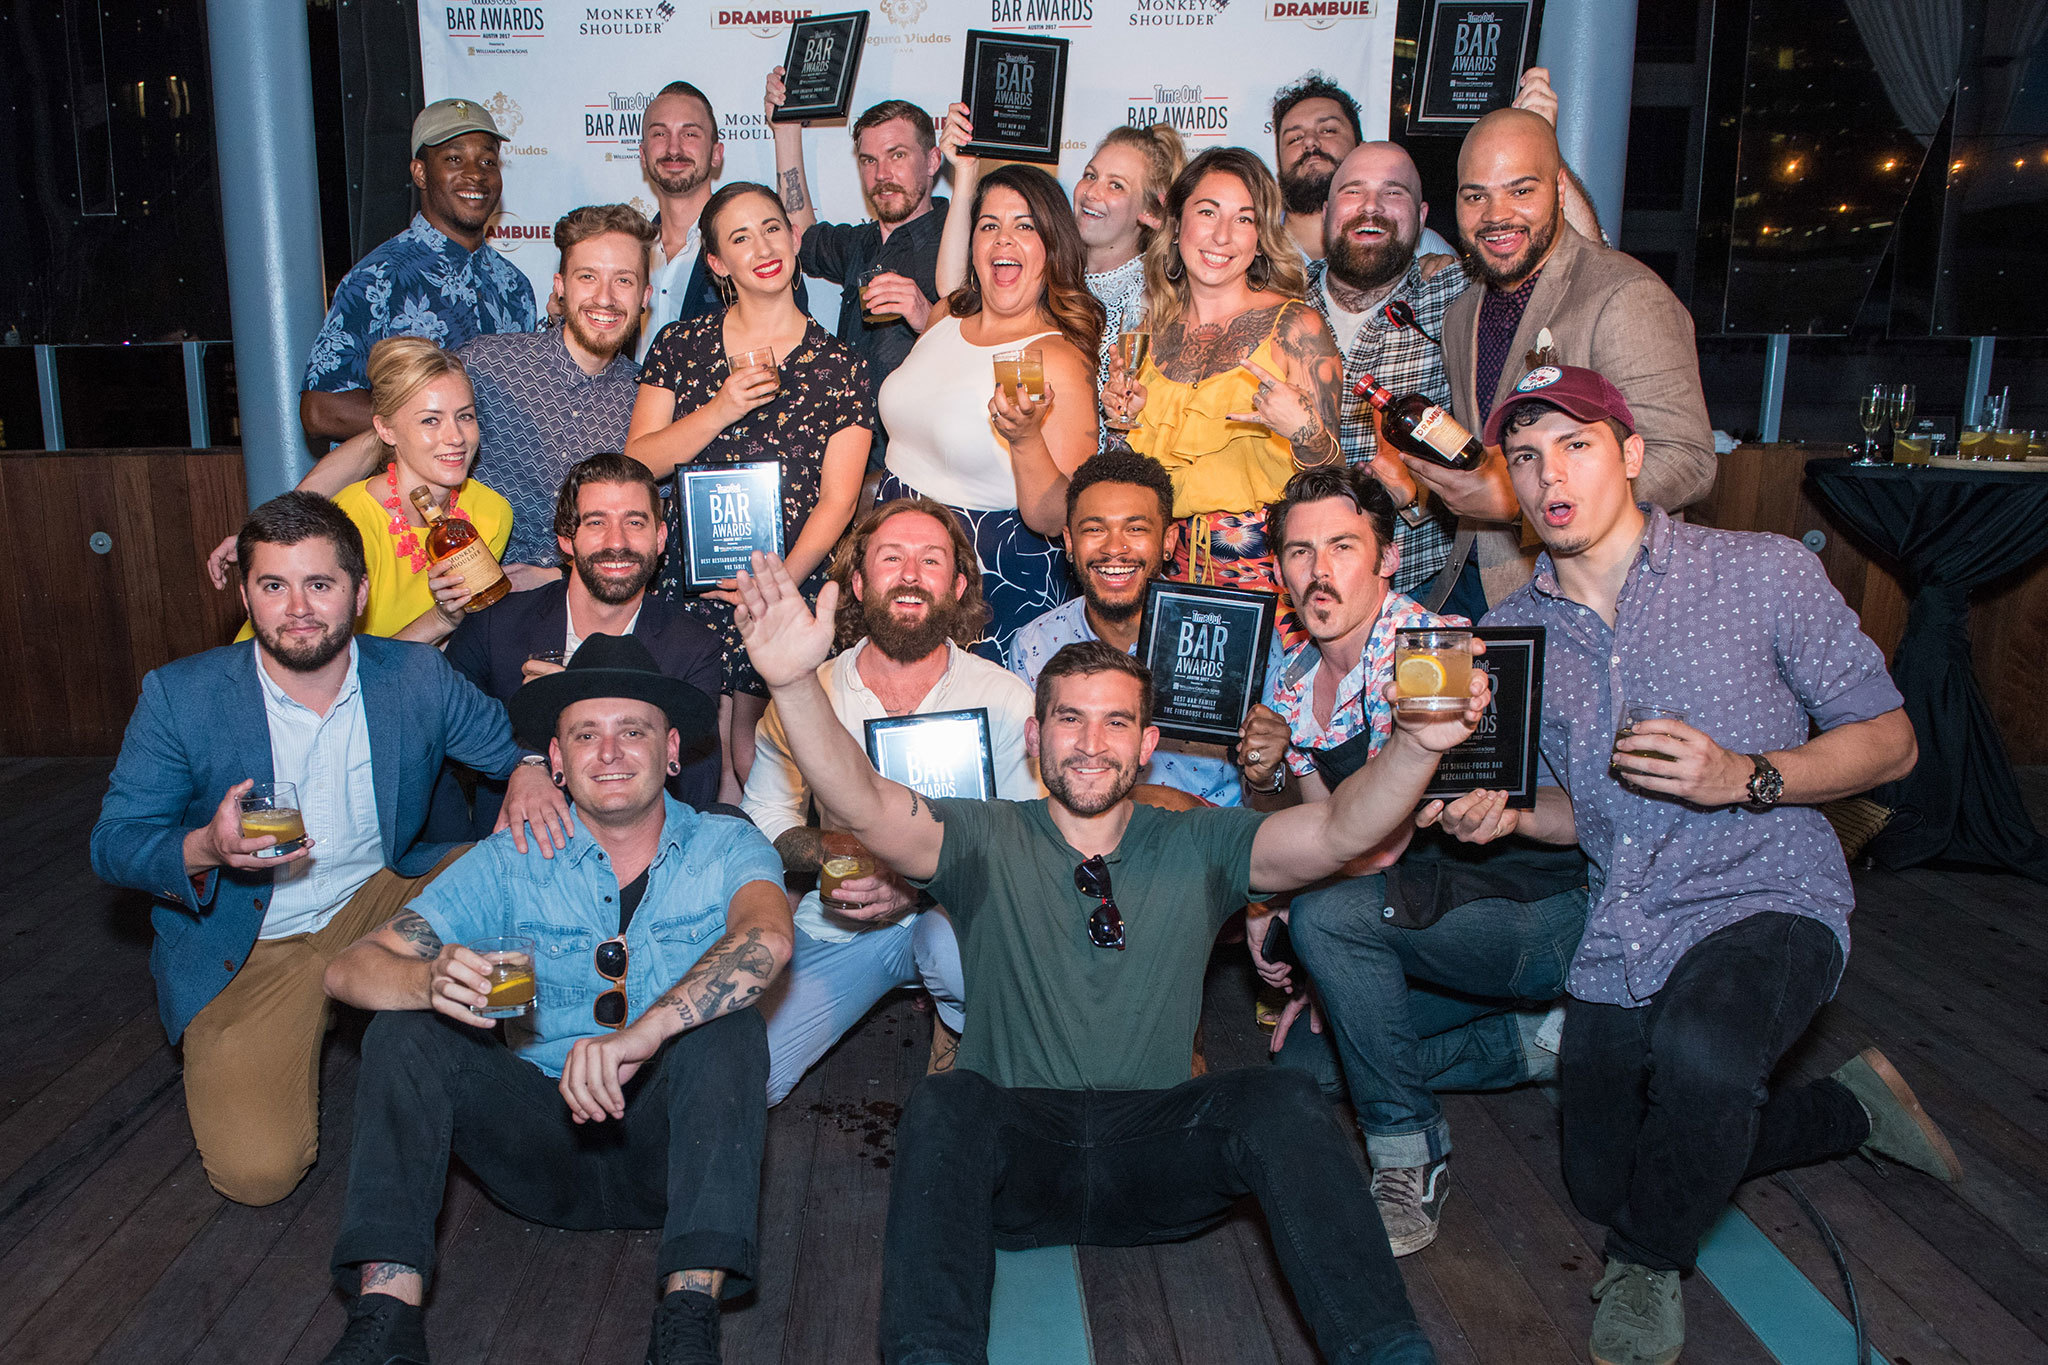 Check out photos from our Bar Awards bash